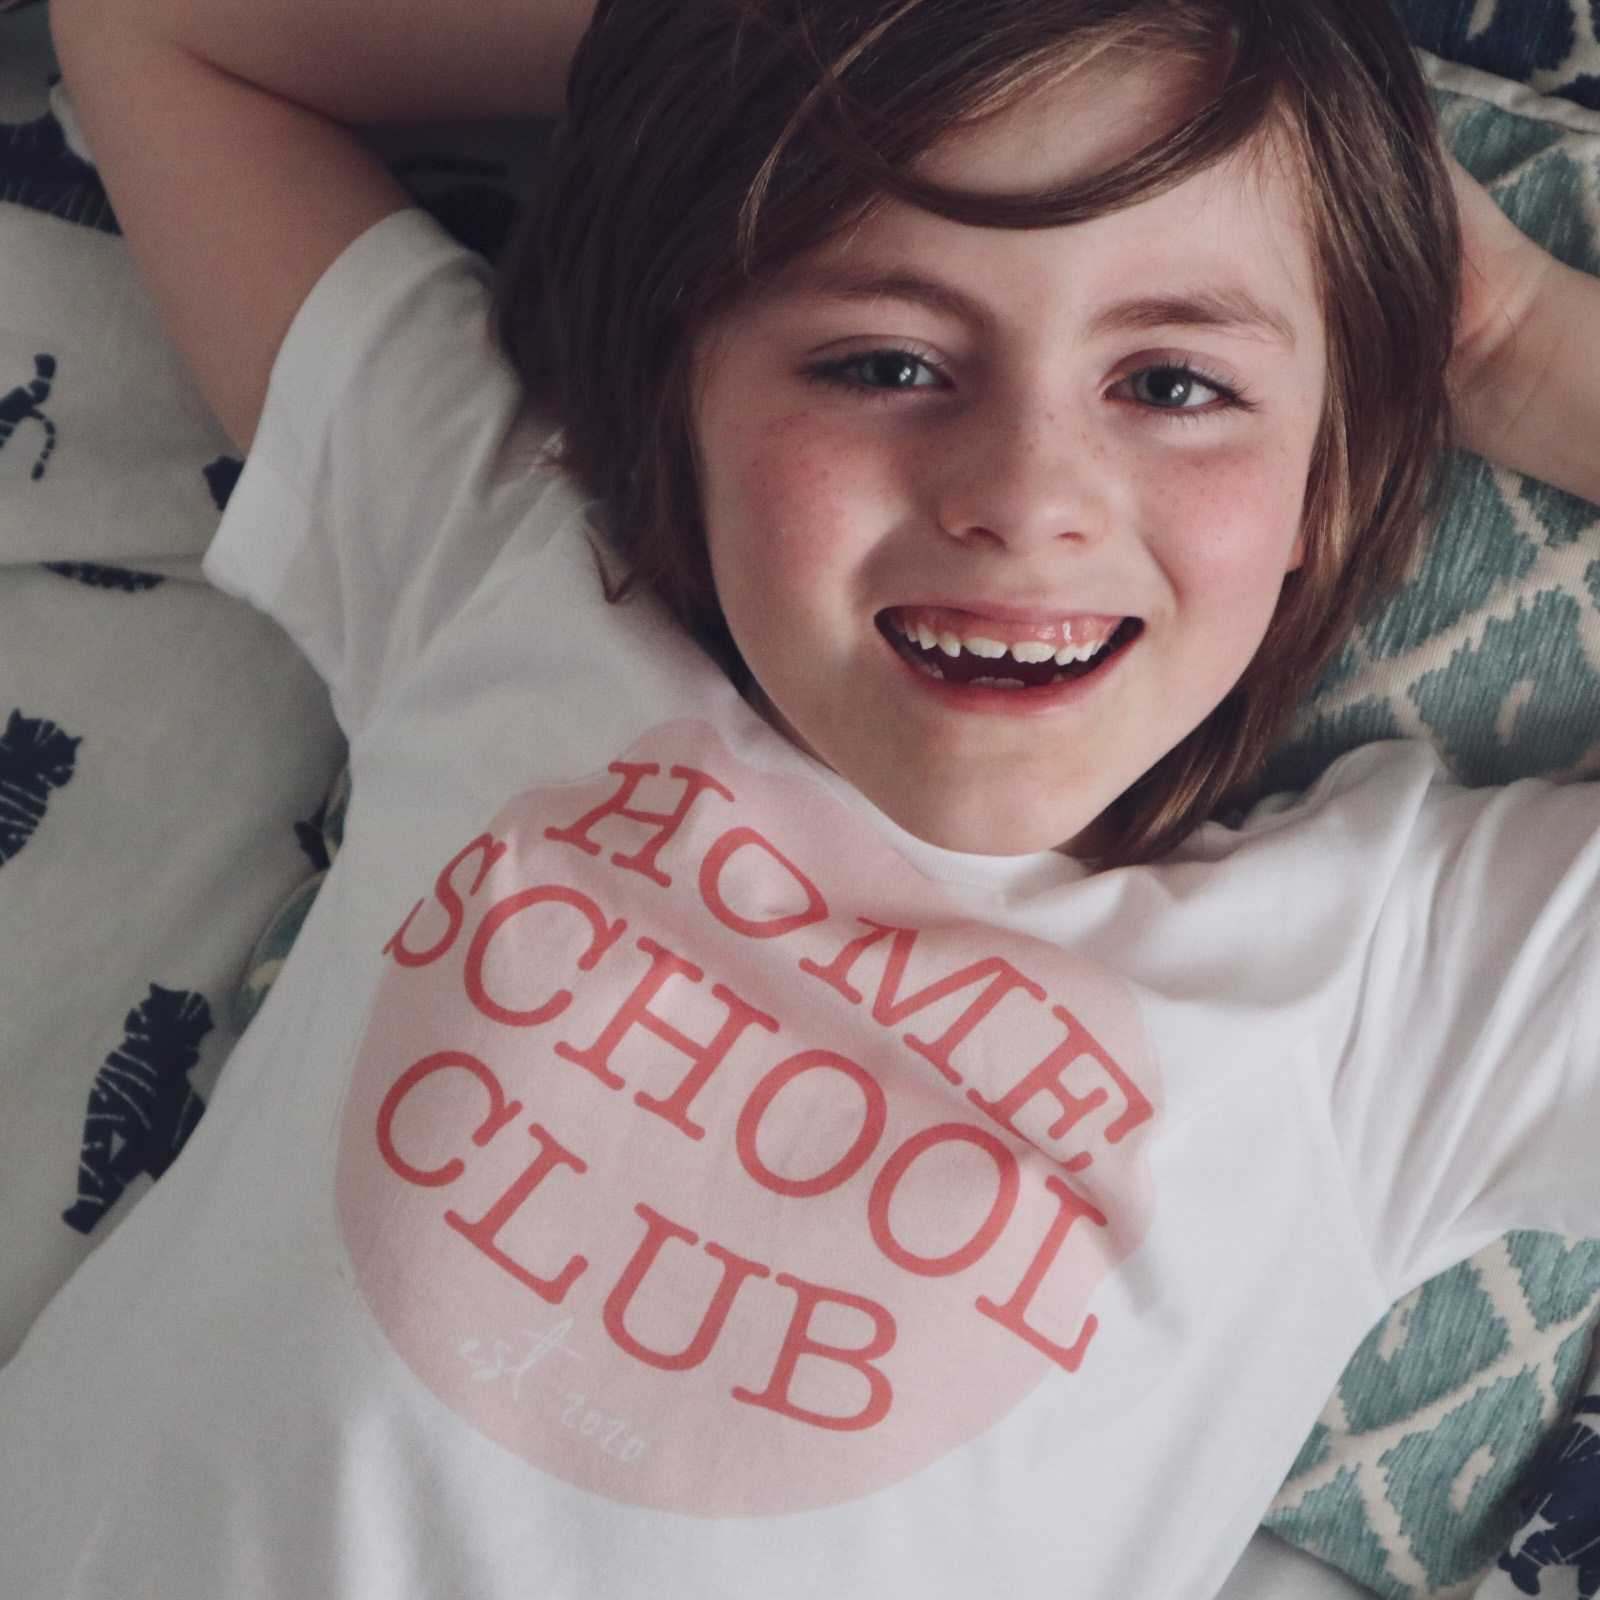 home school club t-shirt